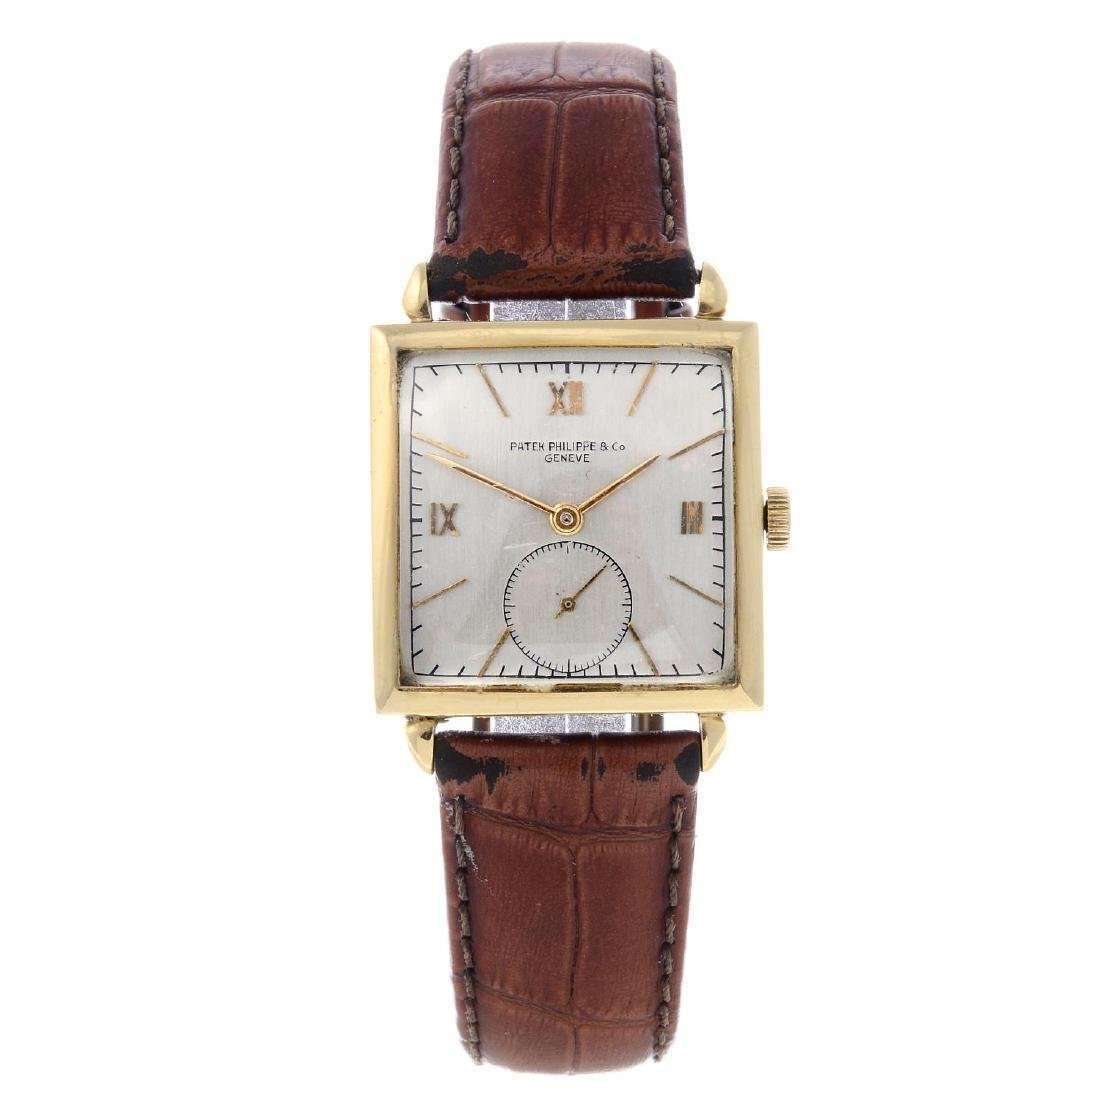 PATEK PHILIPPE - a gentleman's wrist watch. Yellow